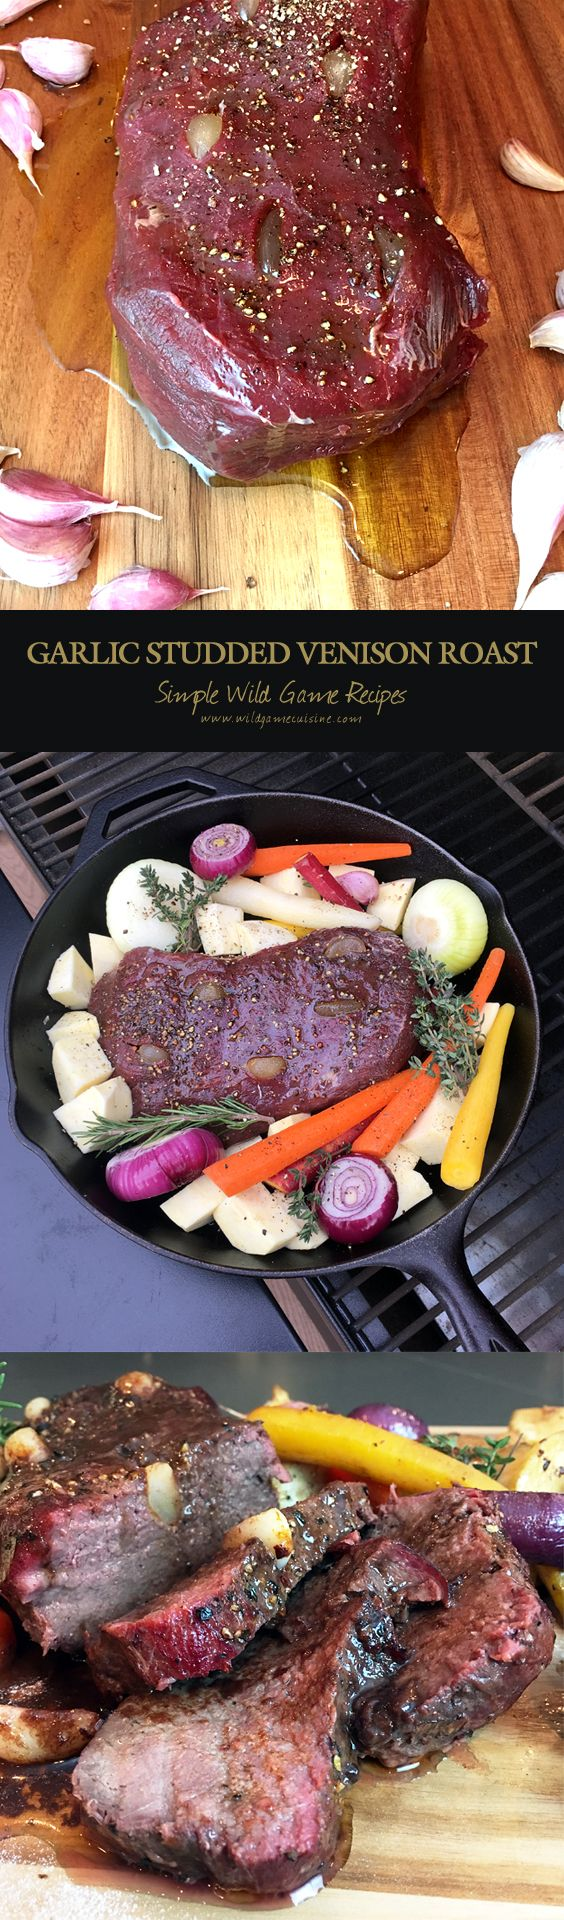 Garlic Studded Venison Roast. If you are looking for a different spin on baking or smoking your Venison roast, try adding whole garlic cloves to the roast to give the interior of the meat a unique flavor and an intense aroma.